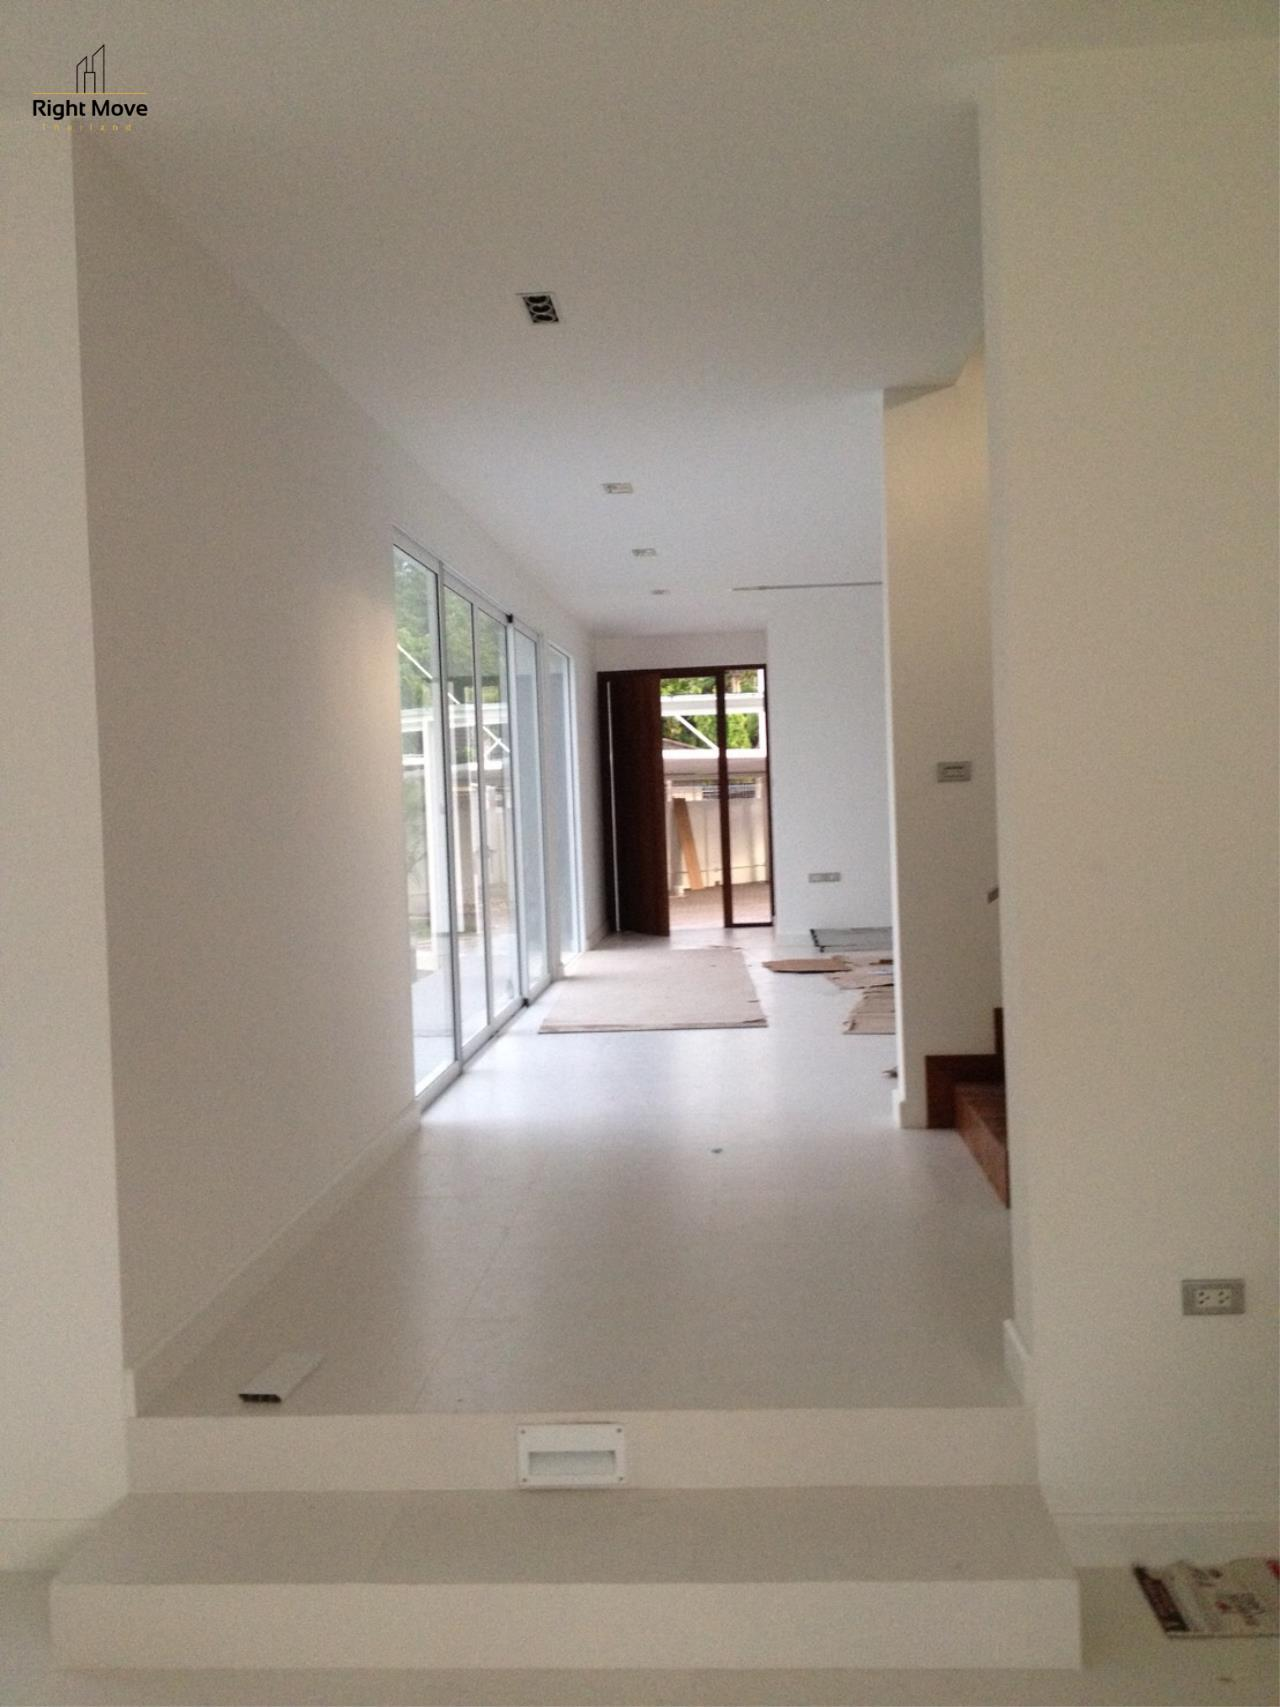 Right Move Thailand Agency's HR963 House with private pool - For Rent 180,000 THB 4 Bedrooms 450 Sqm 200 Sqw 7